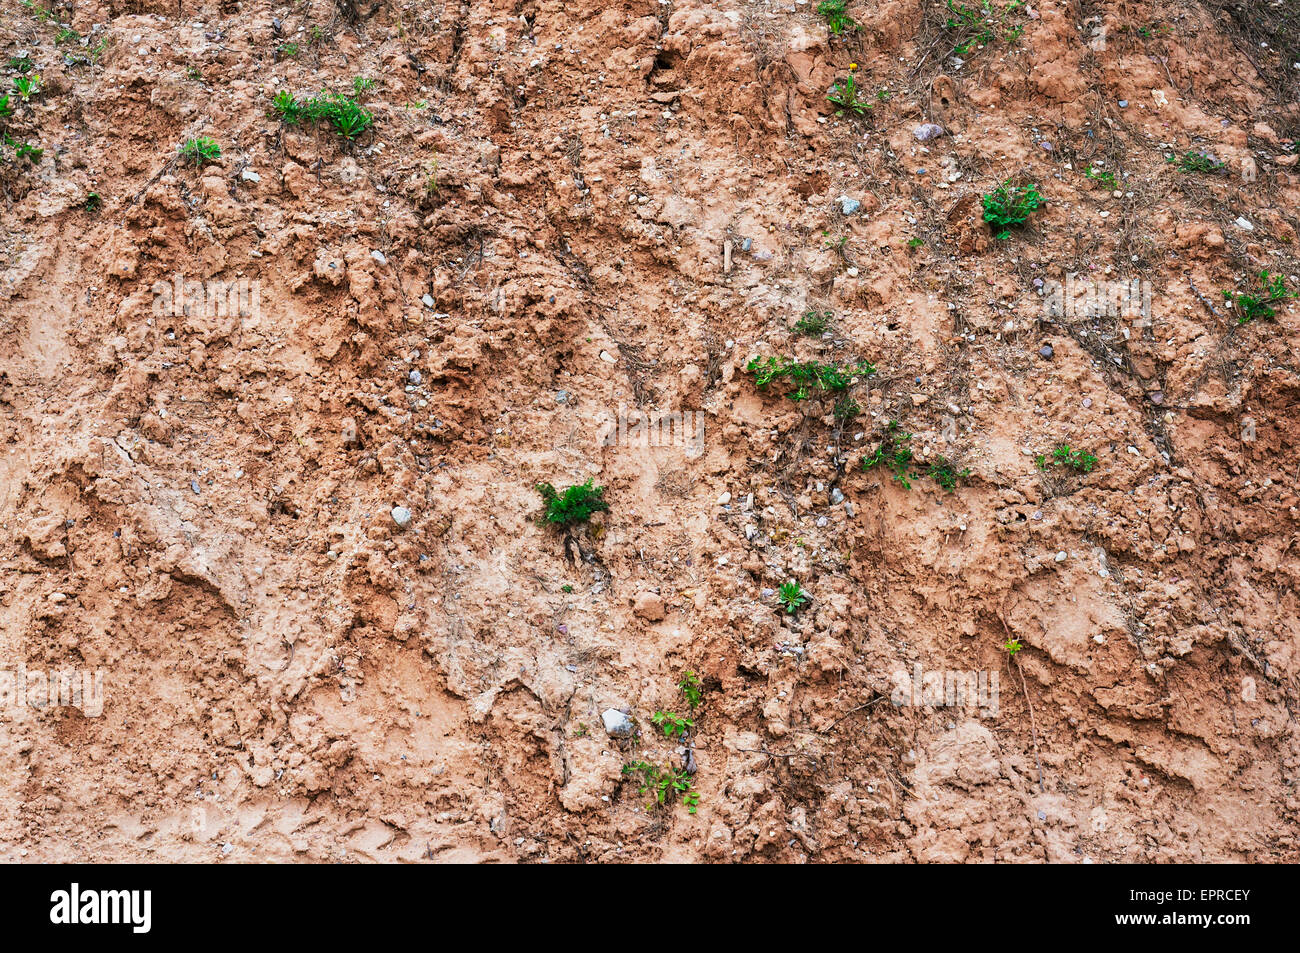 The dying Earth planet- a soil erosion concept background - Stock Image